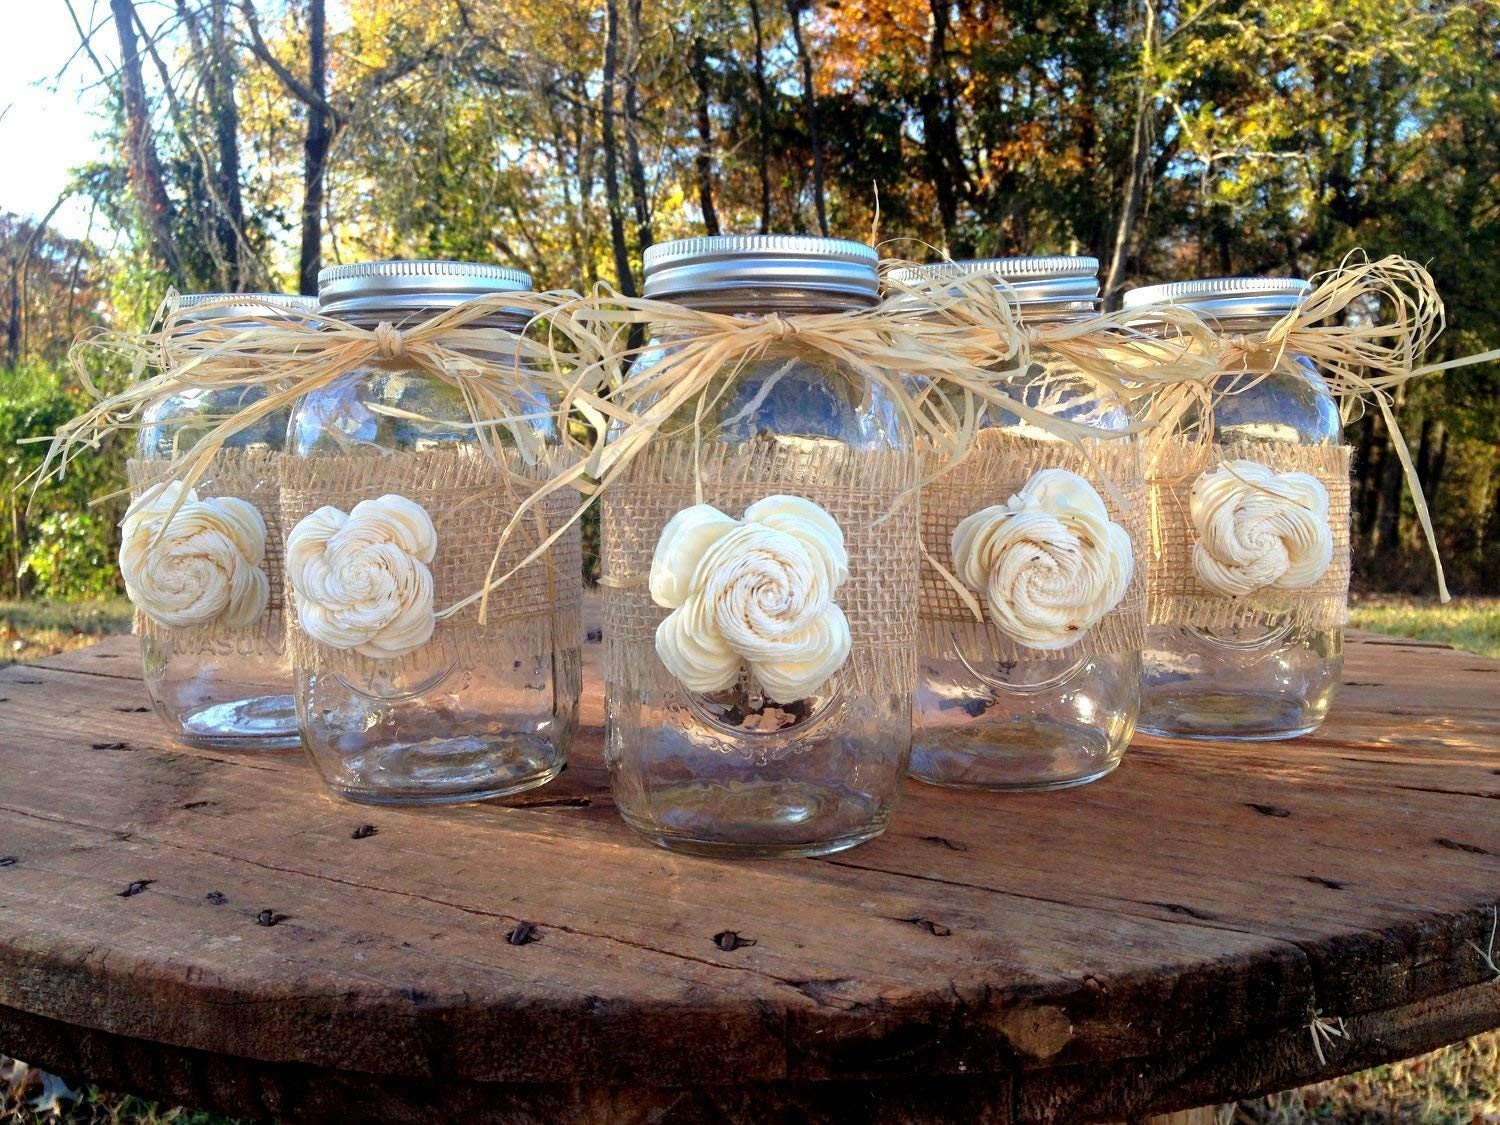 Mason Jar Wedding Centerpieces.Rustic Mason Jars With Sola Flower Rustic Wedding Decor Wedding Mason Jars Mason Jar Centerpieces Ball Mason Jars